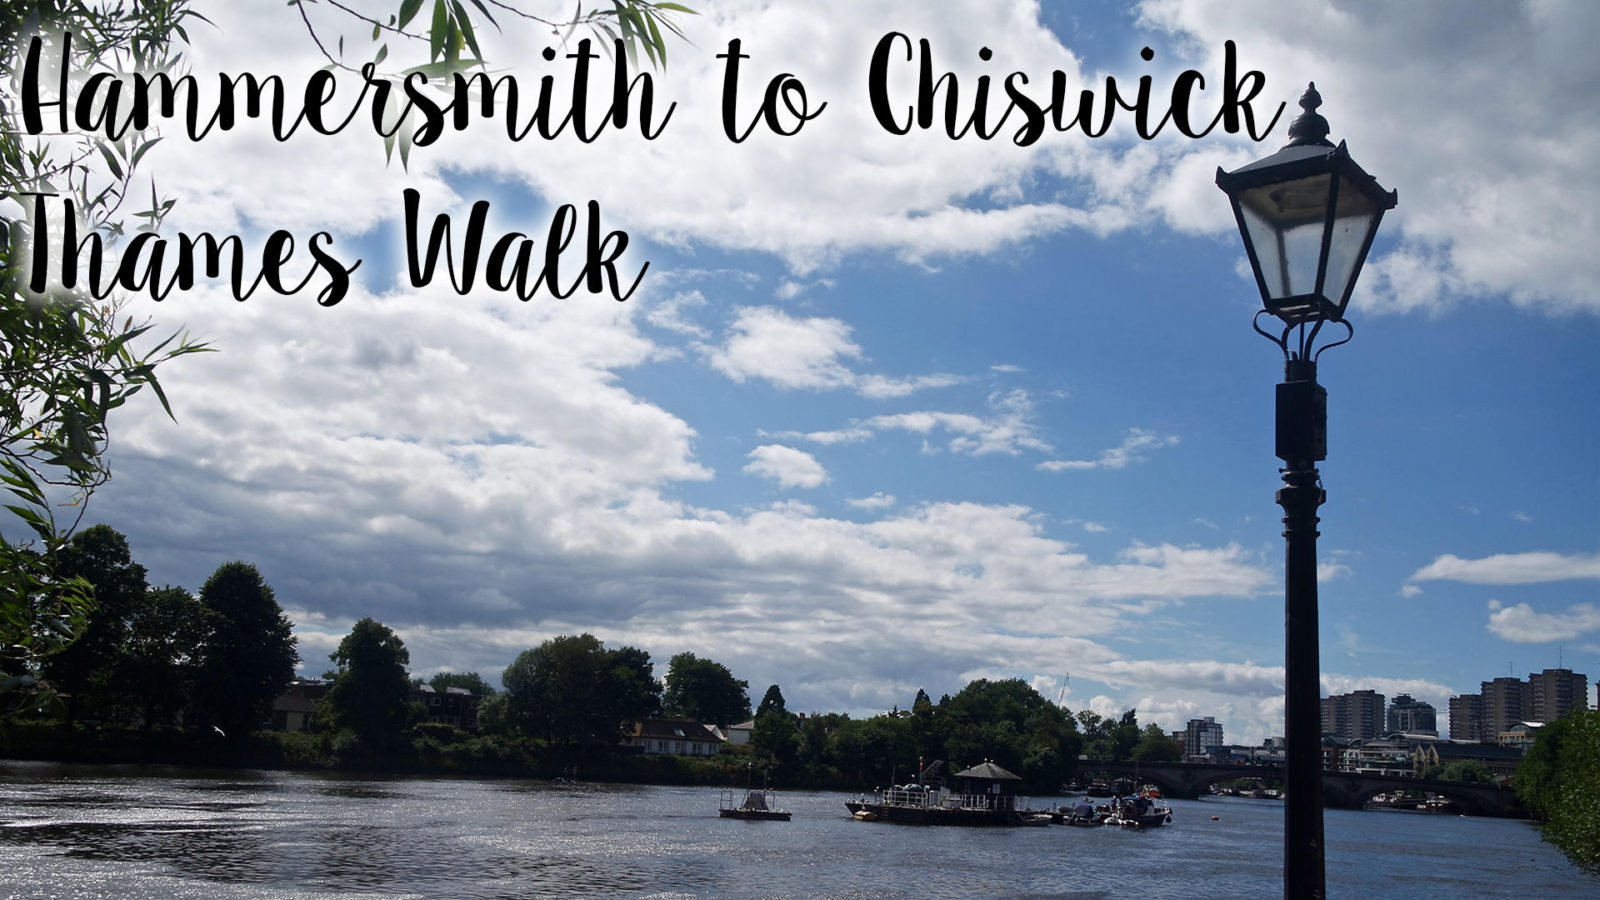 Hammersmith to Chiswick Thames Walk